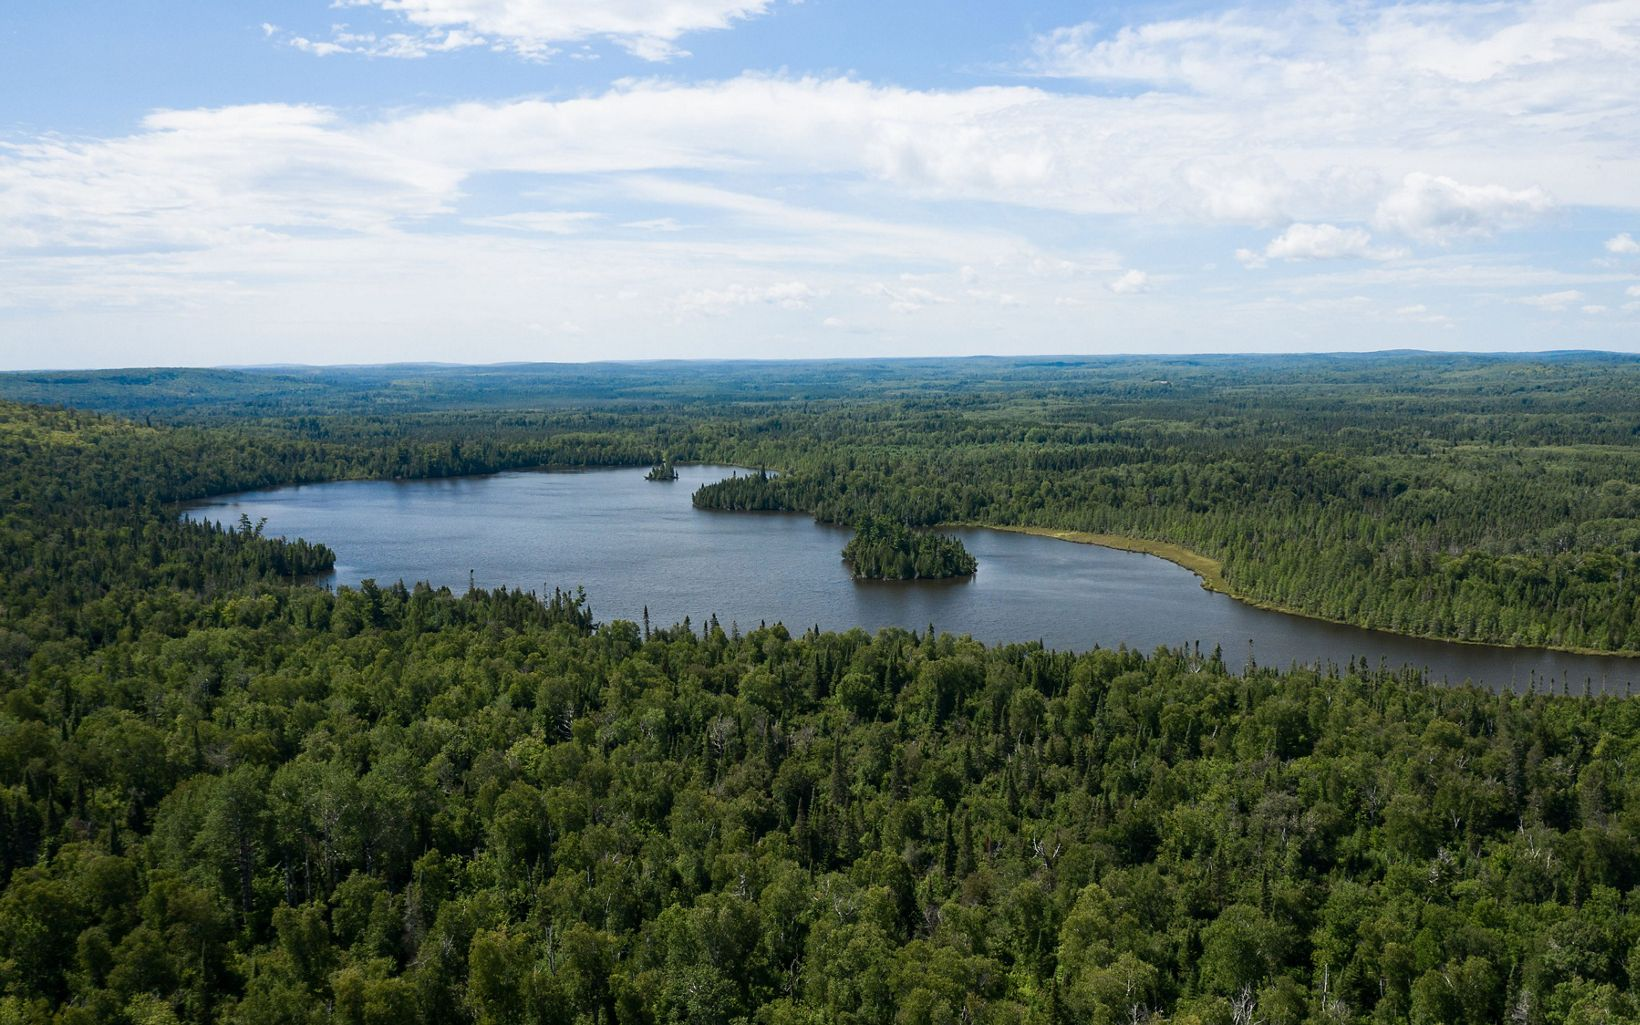 A large lake surrounded by unbroken forest glistens under blue skies.